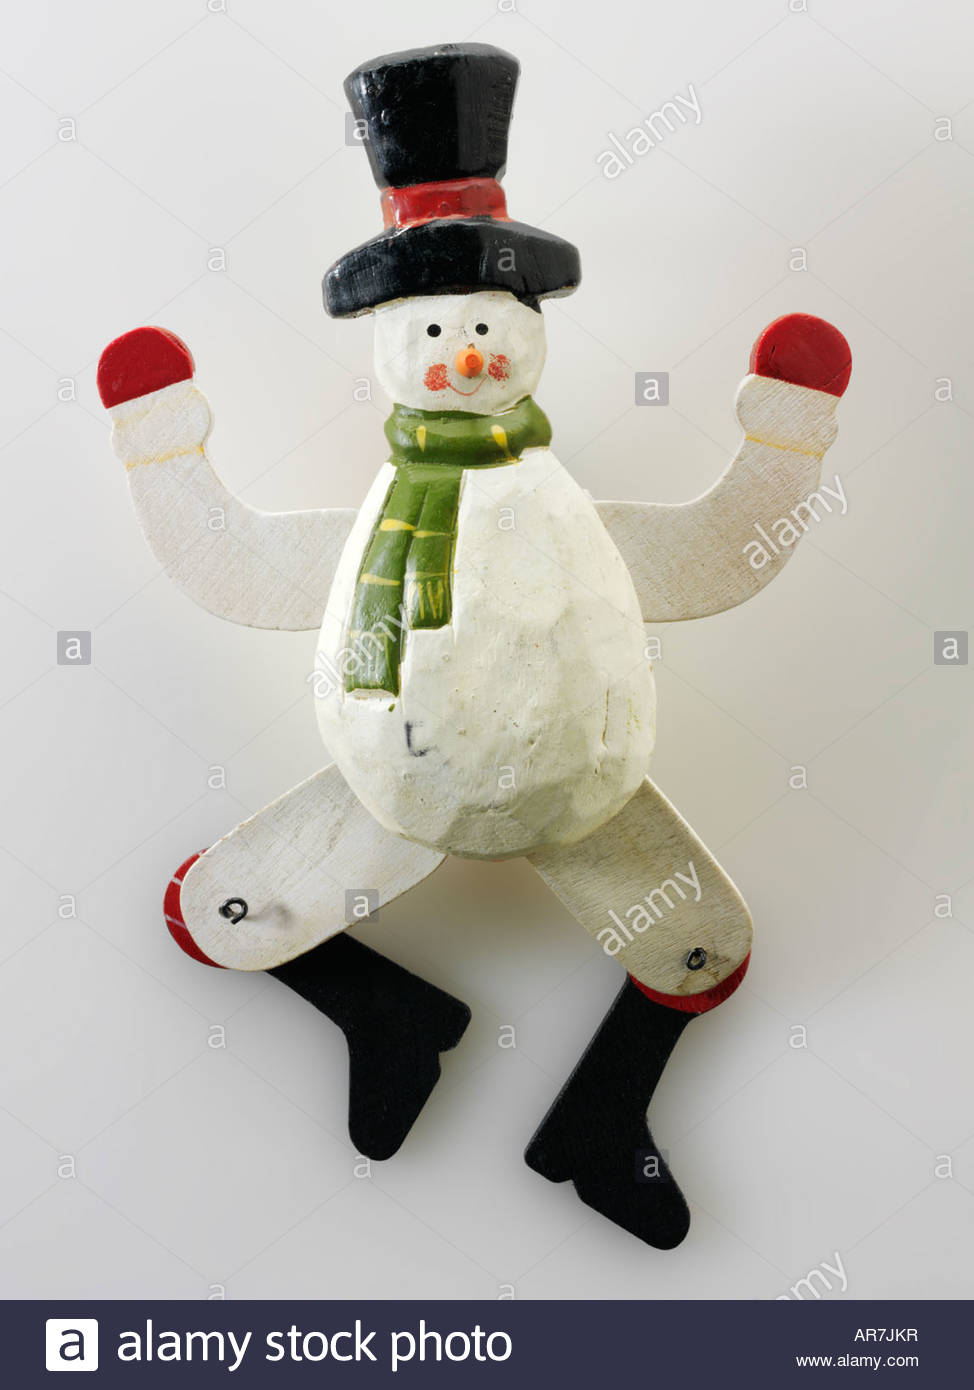 hand painted festive  wooden snowman Christmas decoration - Stock Image